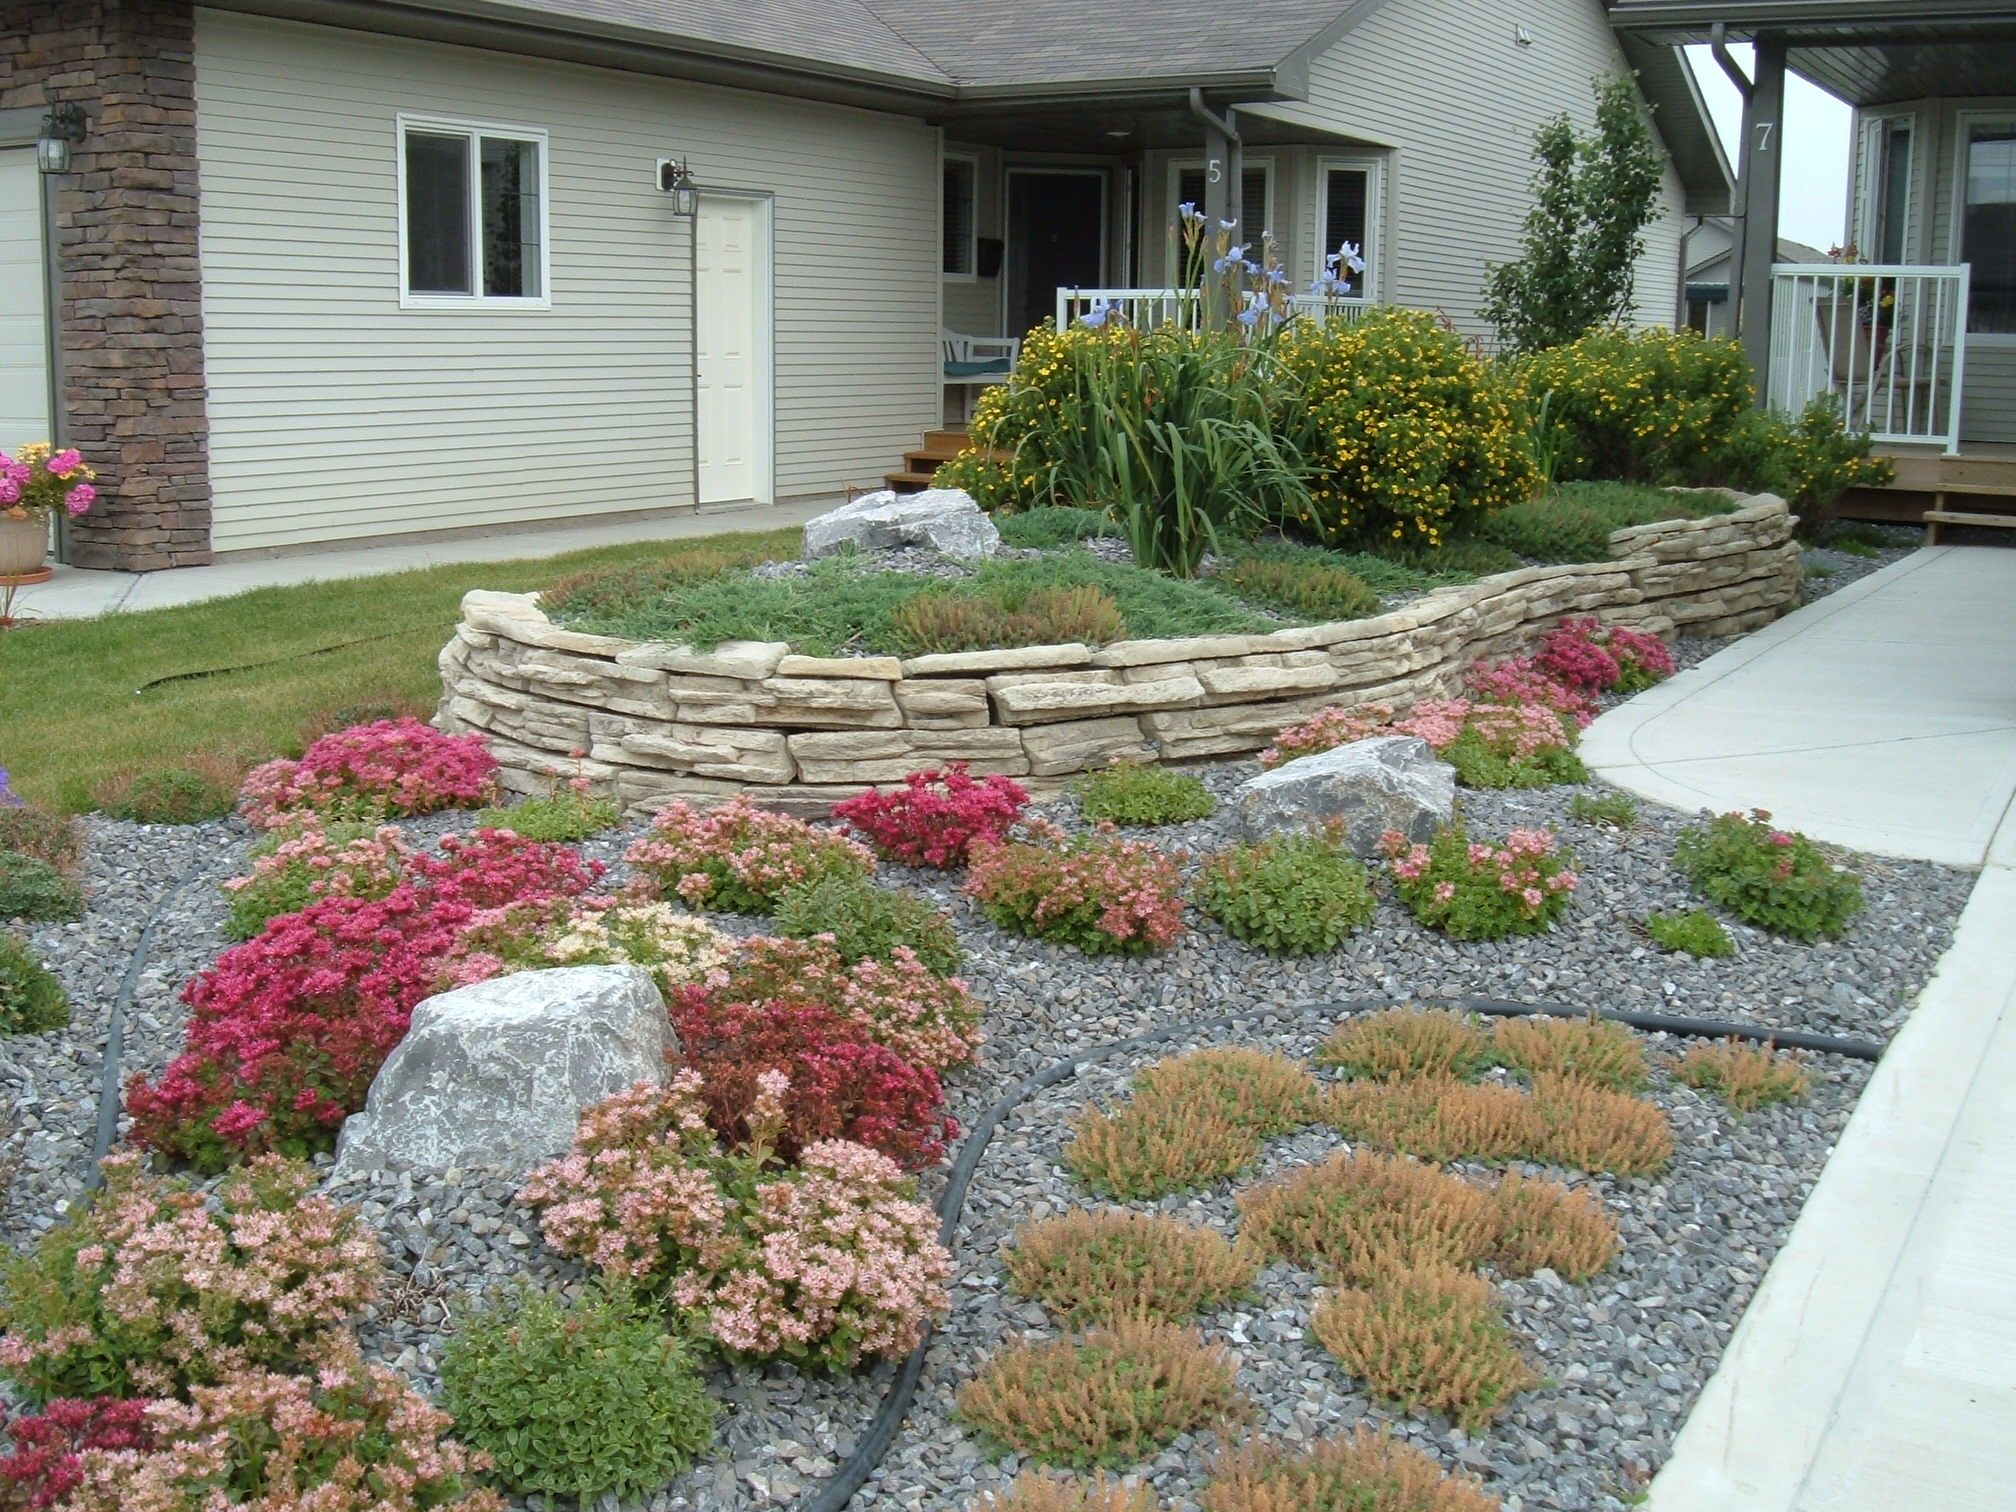 minimal maintenance landscaping a no lawn front yard with on inspiring trends front yard landscaping ideas minimal budget id=71751